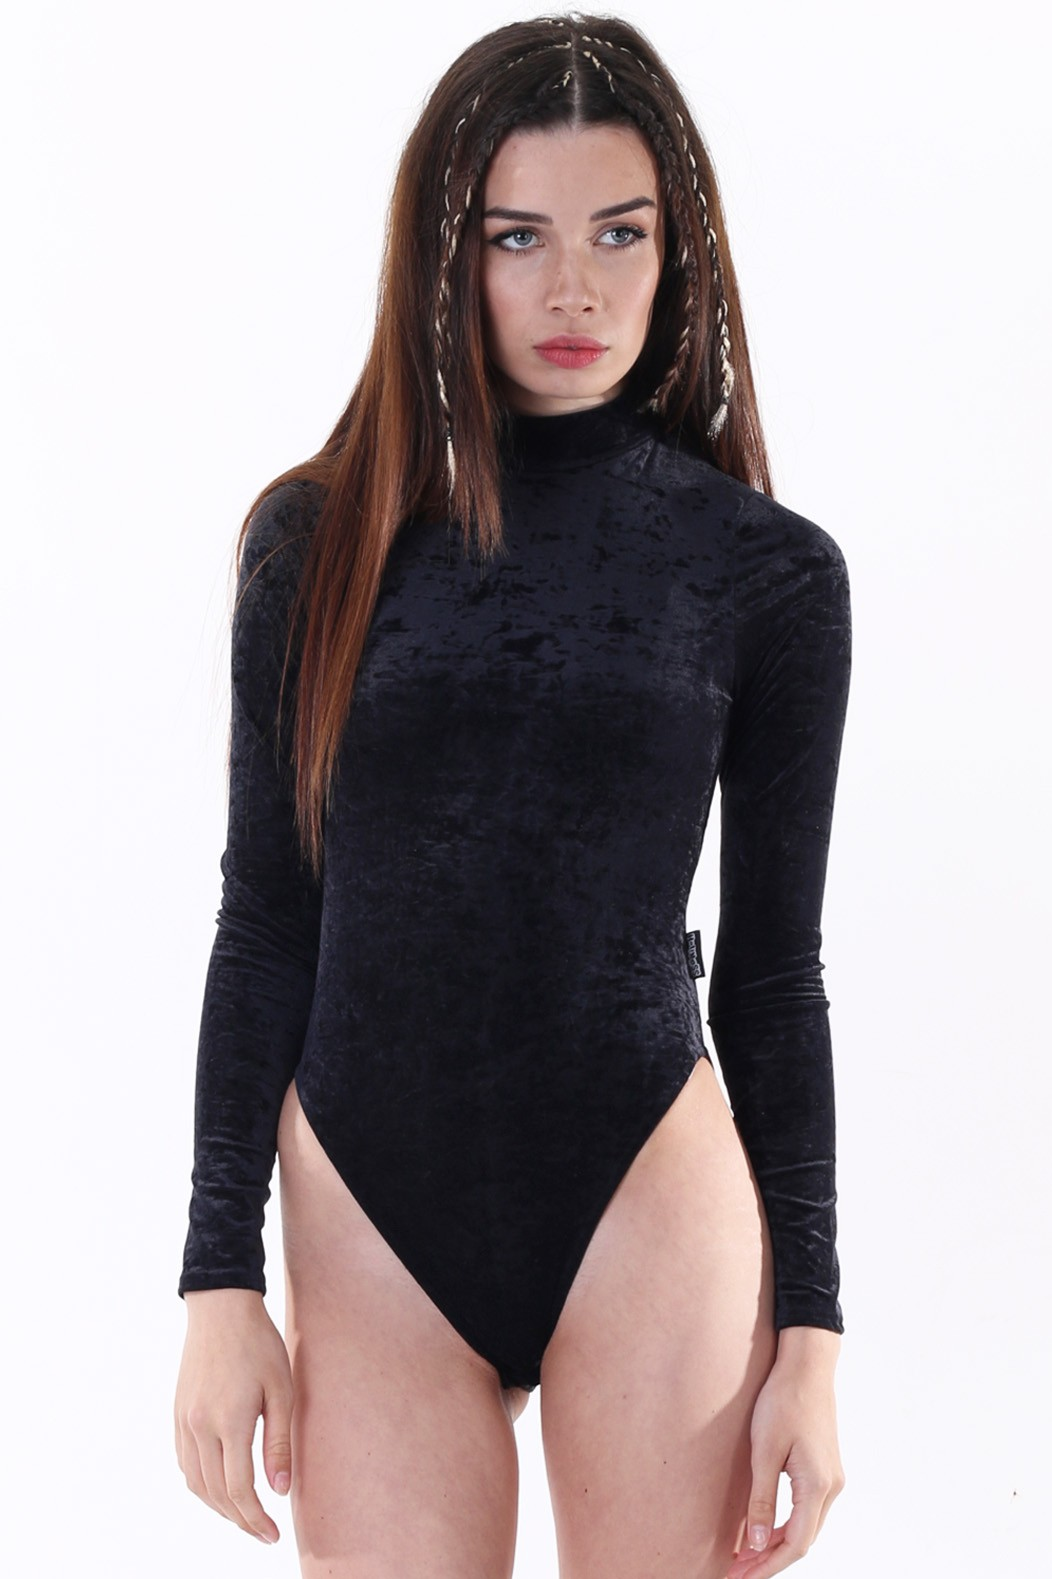 FREE SHIPPING on + leotards. Express your leotard style from classic to modern. Best prices on top leotard brands like Mariia leotards, Wear Moi, Capezio, Bloch, Mirella.